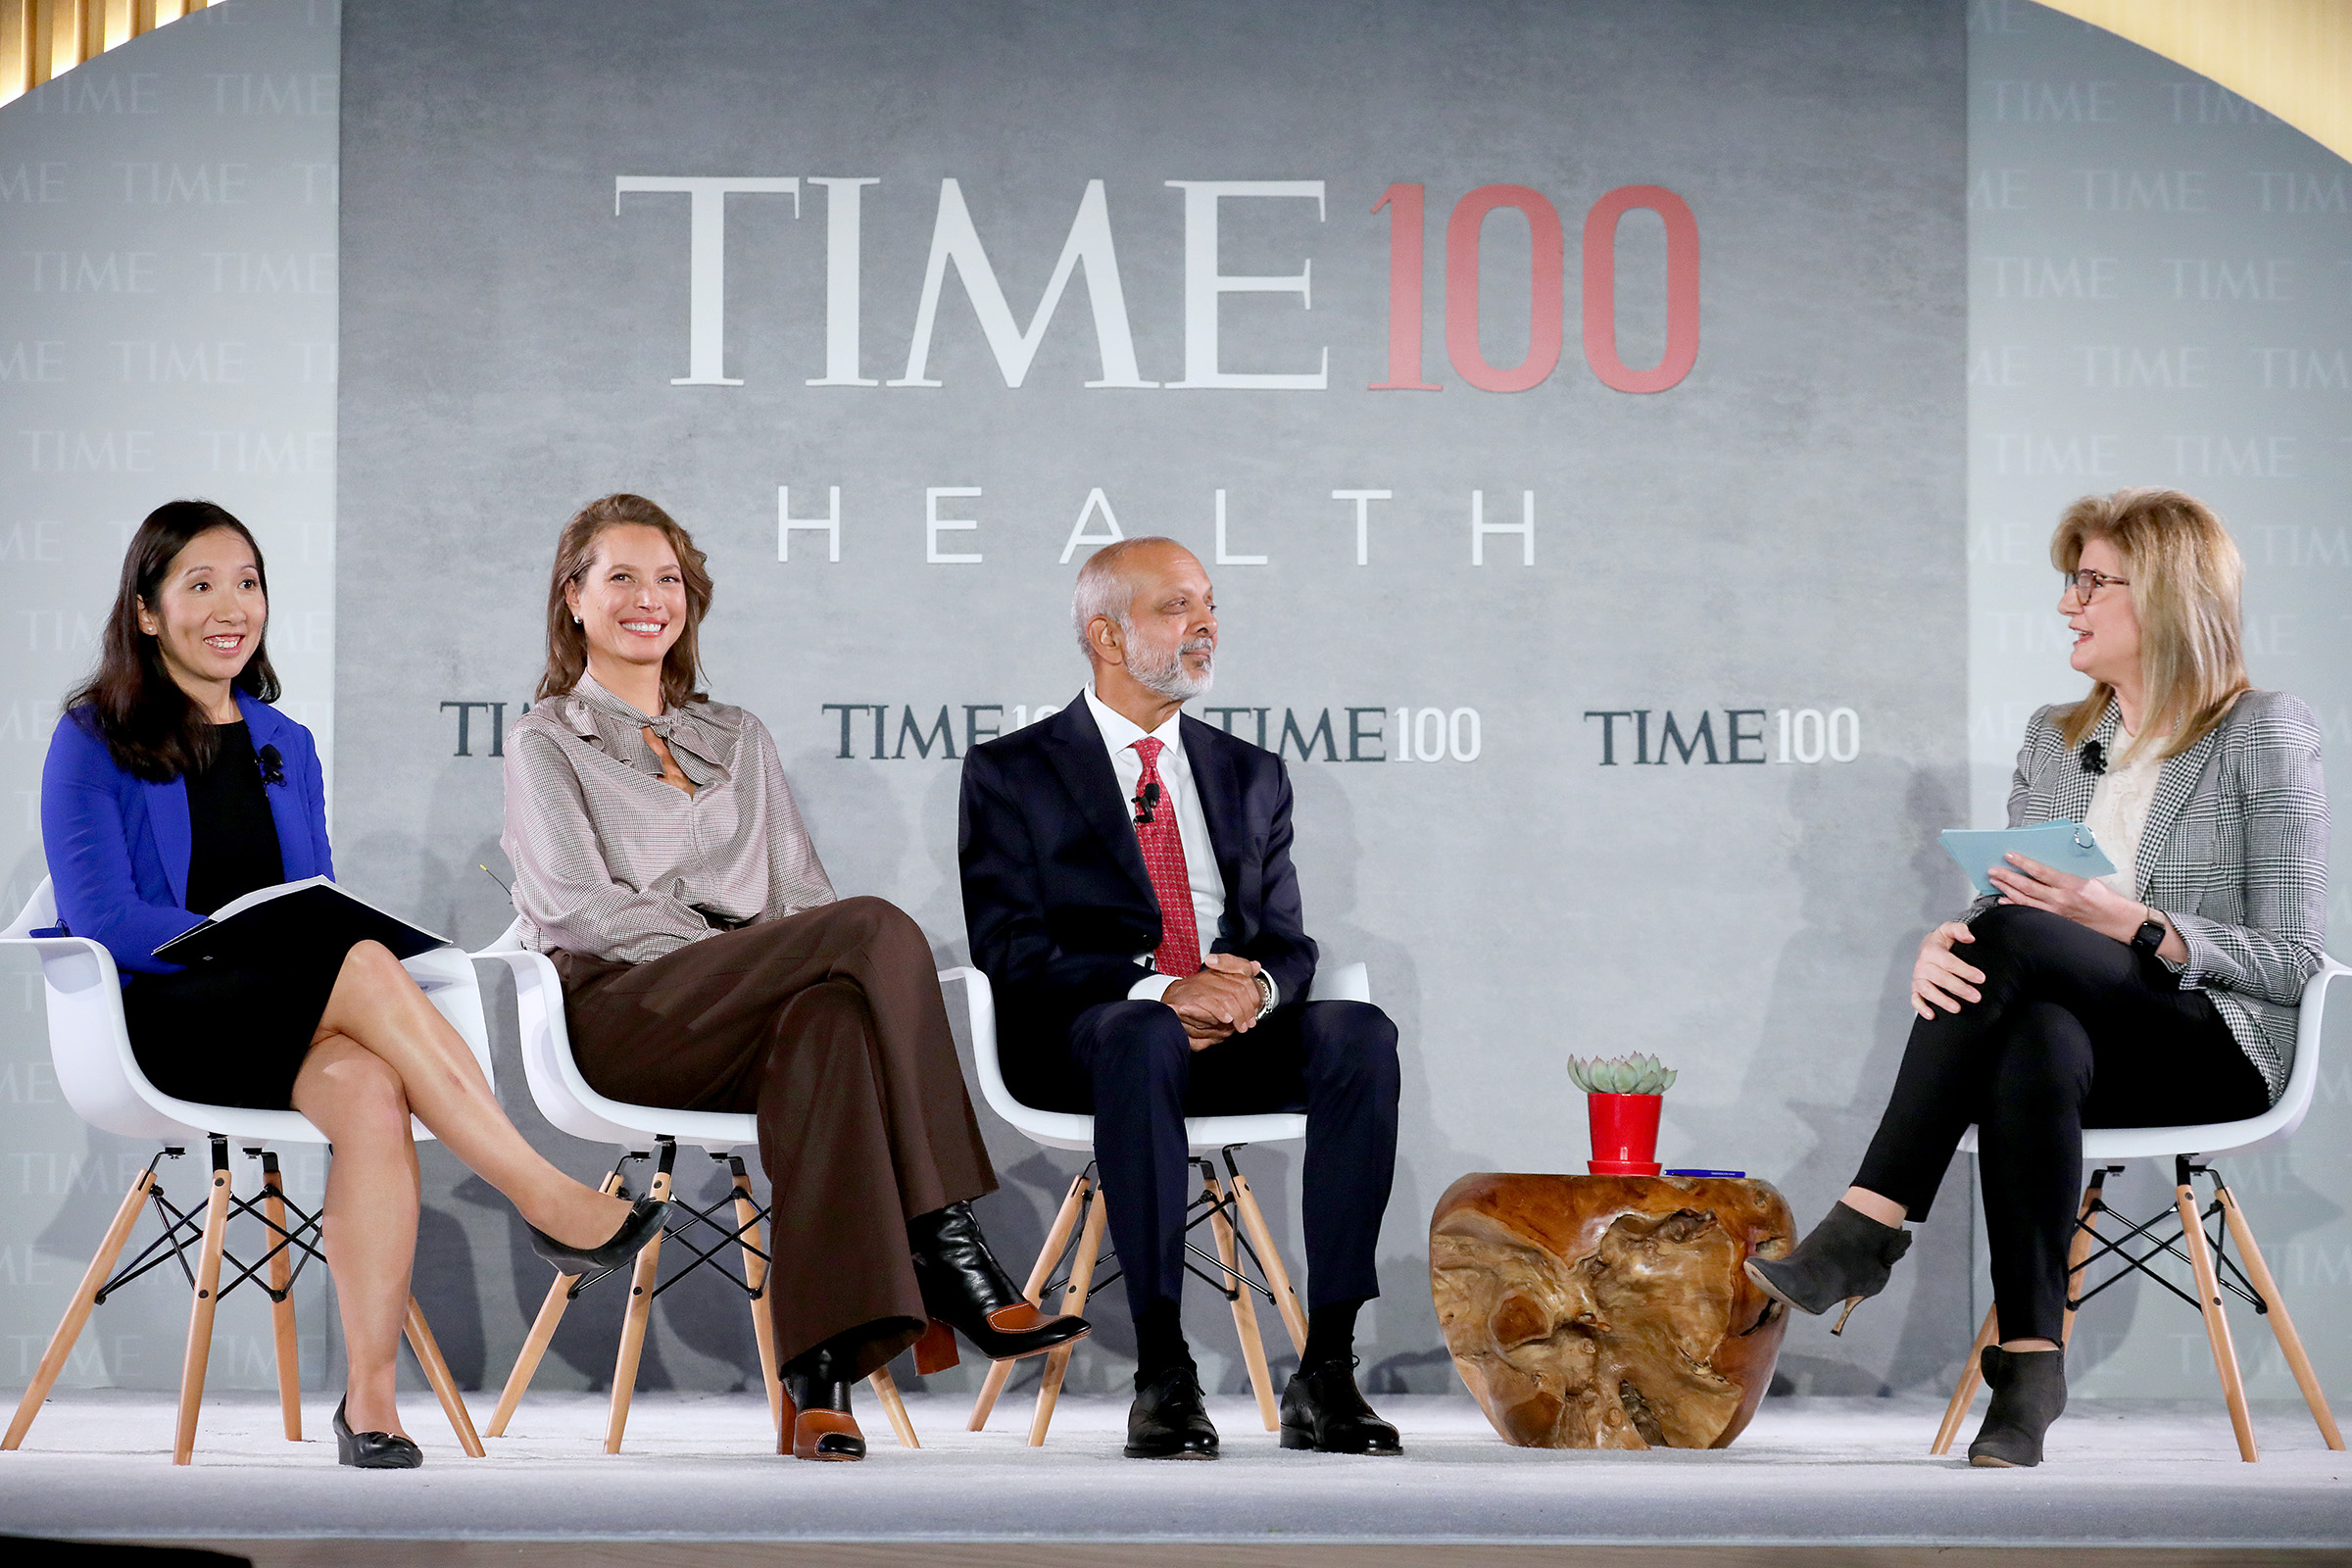 (L-R) Dr. Leana Wen, Christy Turlington Burns, Dr. Naveen Rao and Arianna Huffington speak onstage during the TIME 100 Health Summit at Pier 17 in New York City on Oct. 17, 2019.